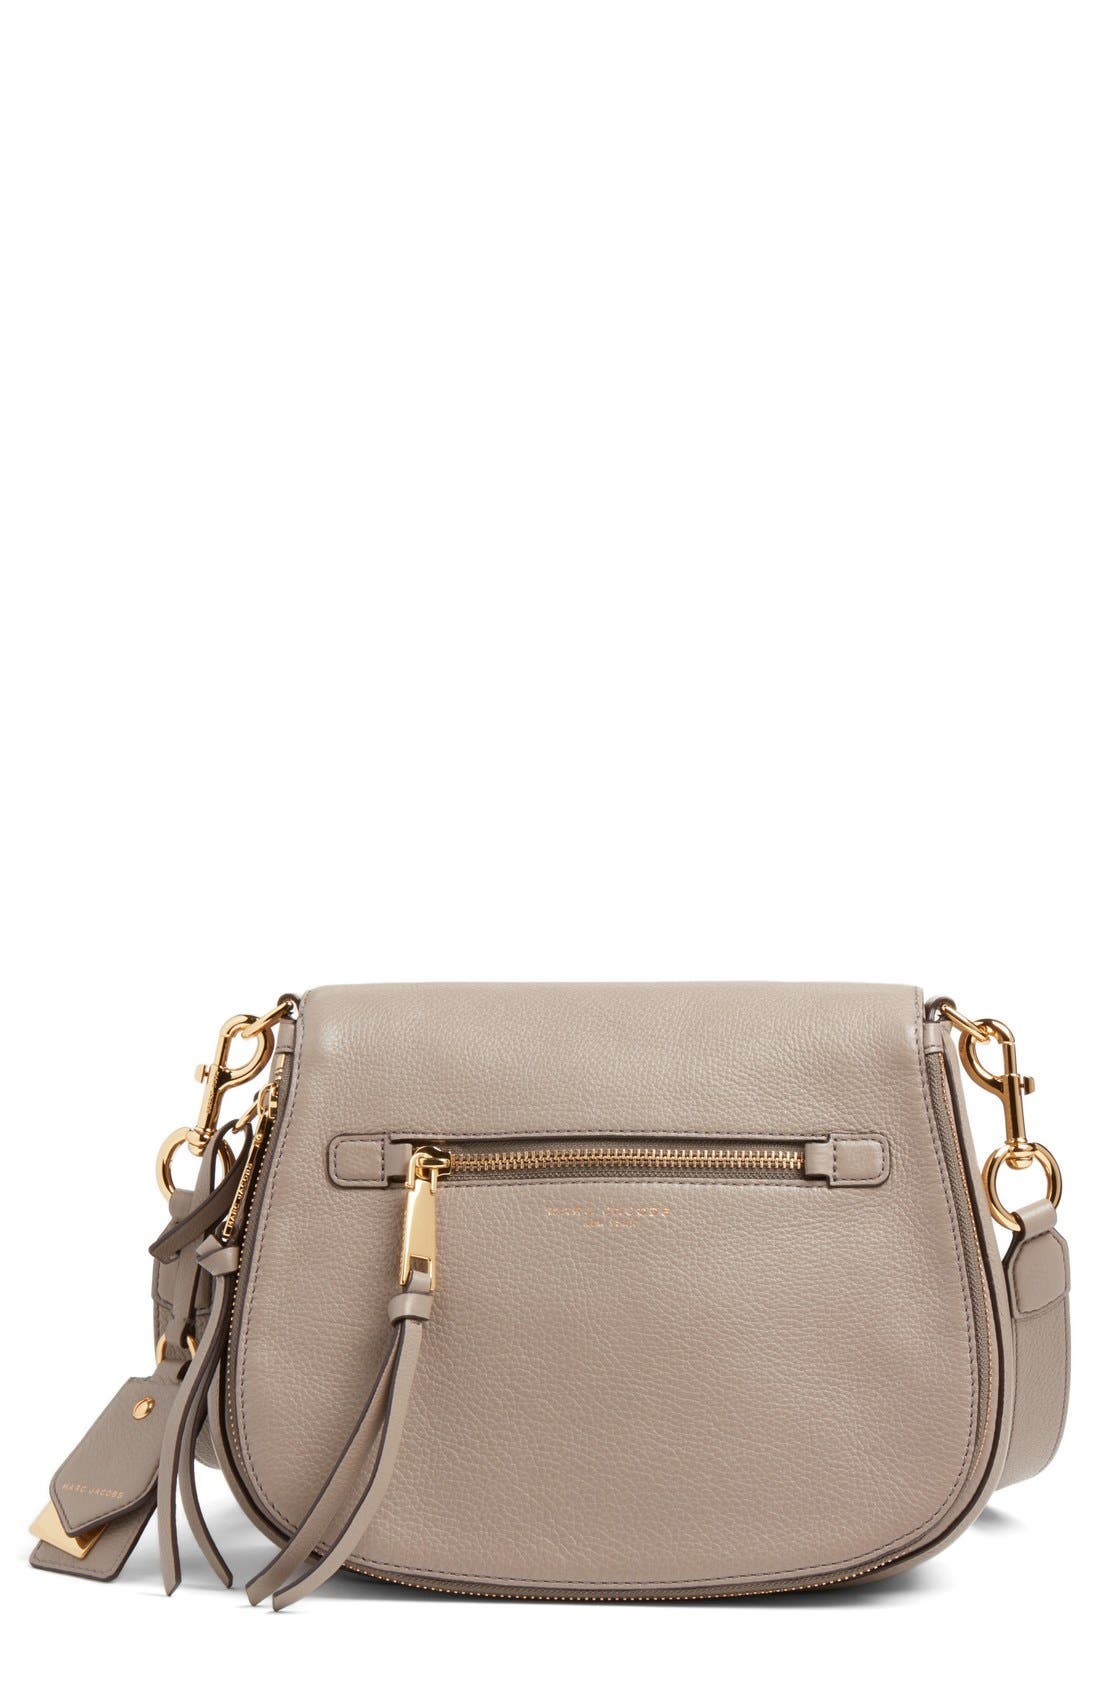 Recruit Nomad Pebbled Leather Crossbody Bag,                         Main,                         color, MINK